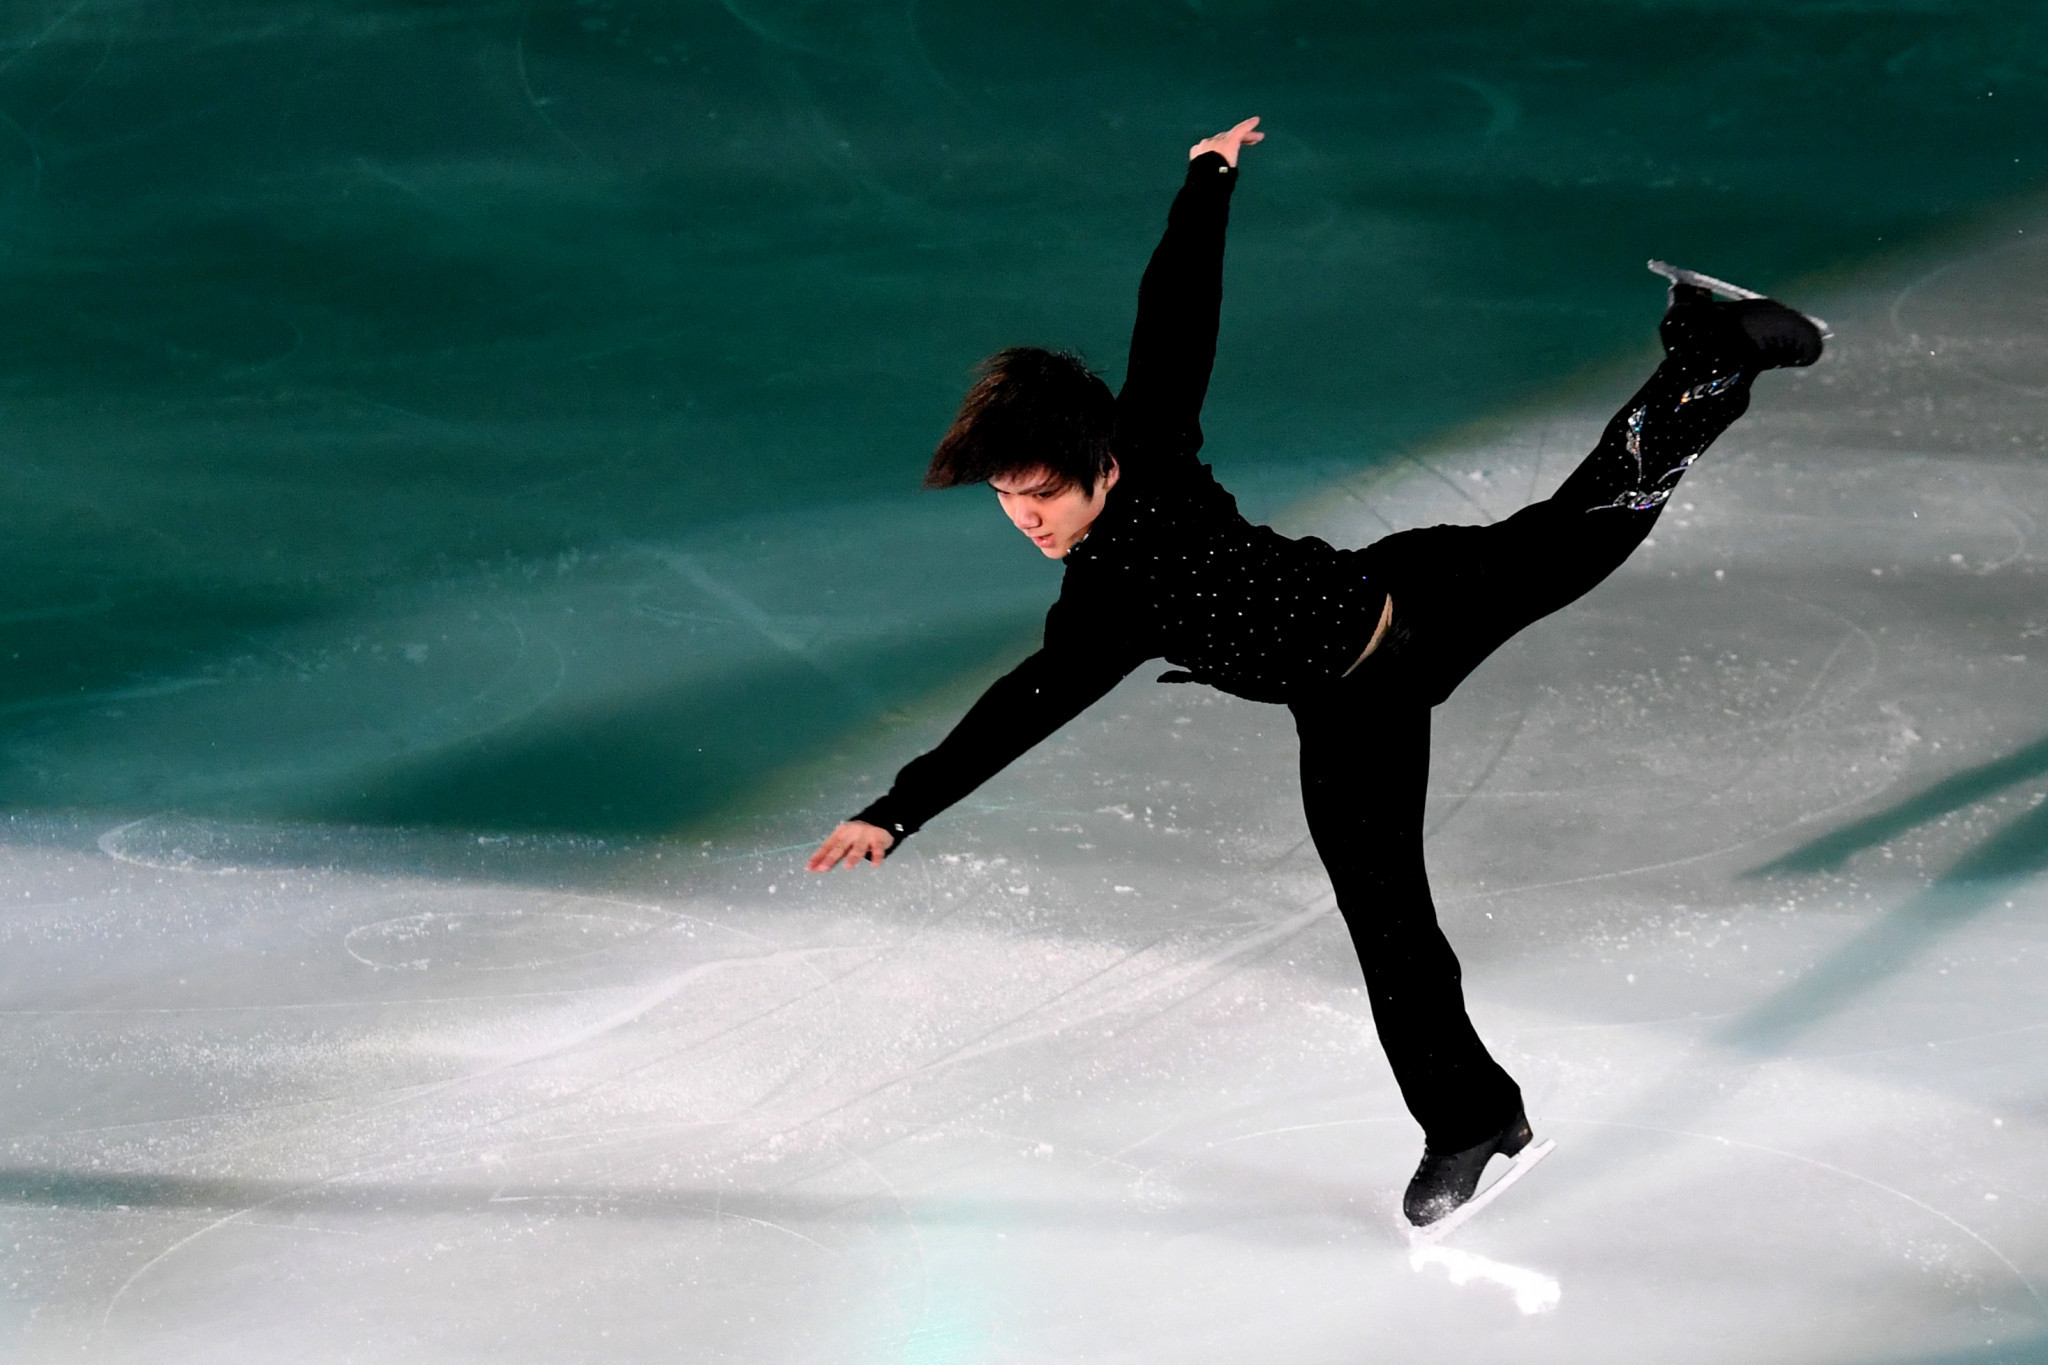 Nagoya native Uno looks for glory on home ice at ISU Grand Prix of Figure Skating Final